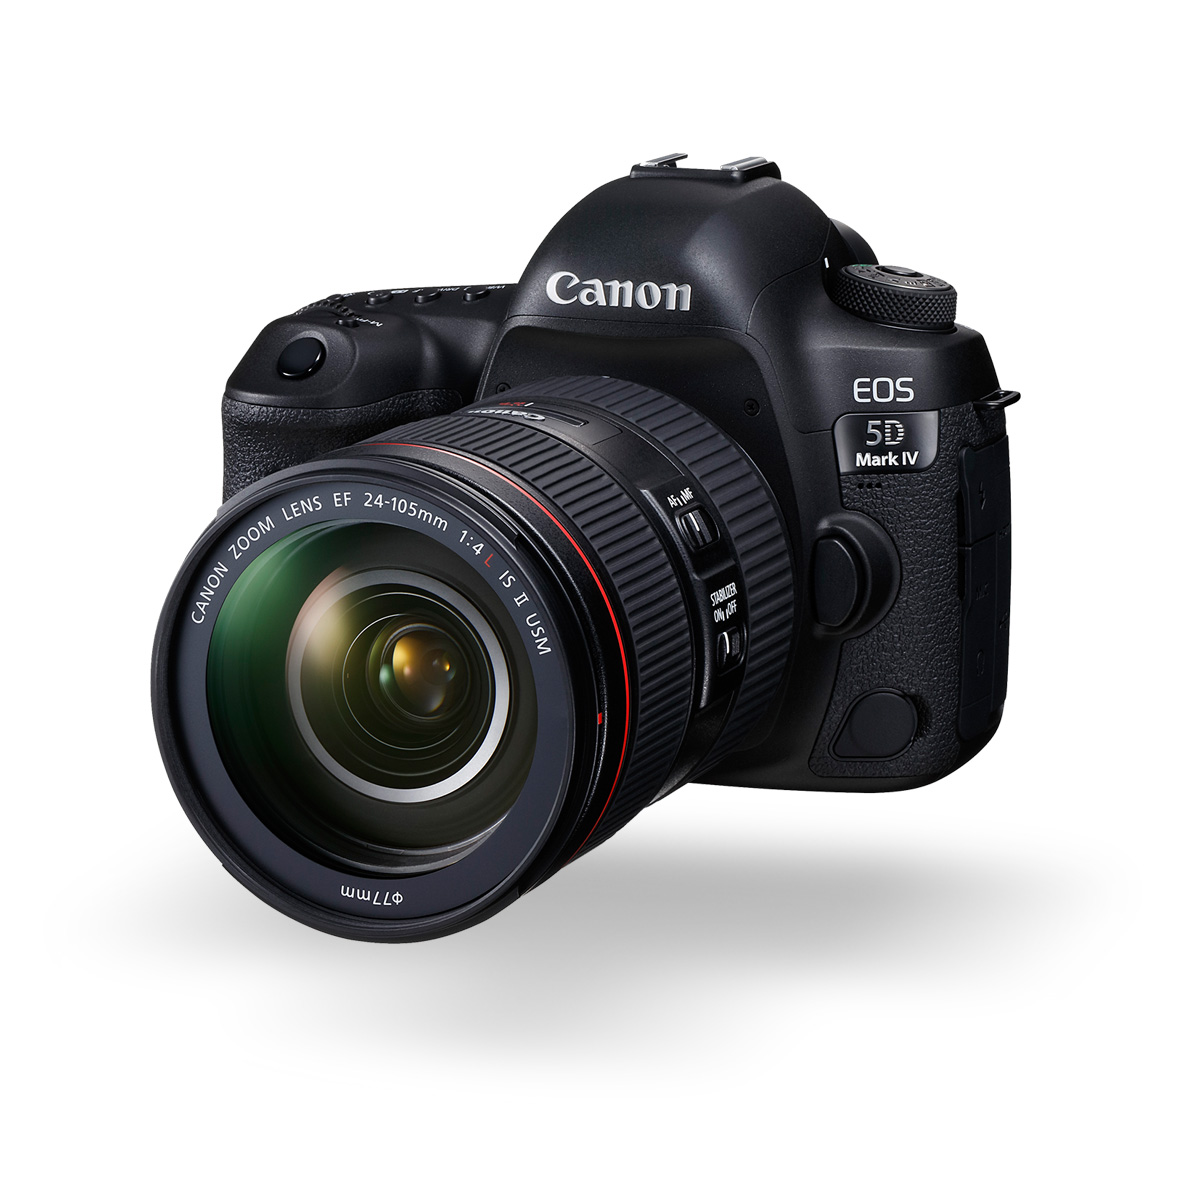 EOS 5D Mark IV DSLR